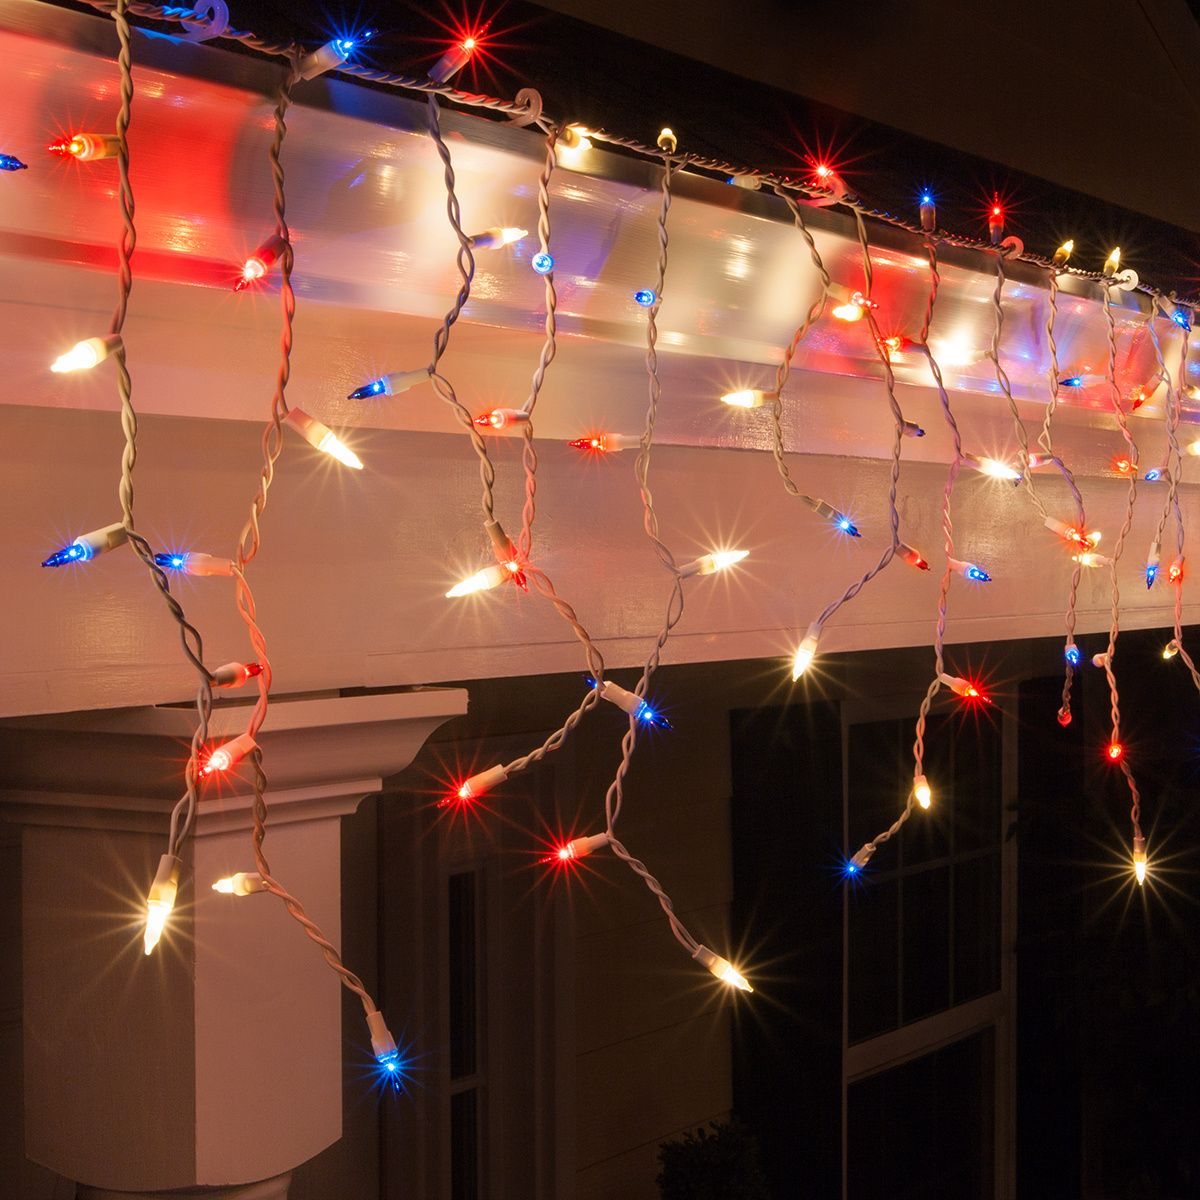 Red White And Blue Icicle Lights White Wire Christmas Lights Etc Icicle Lights Blue Christmas Lights White Wire Christmas Lights